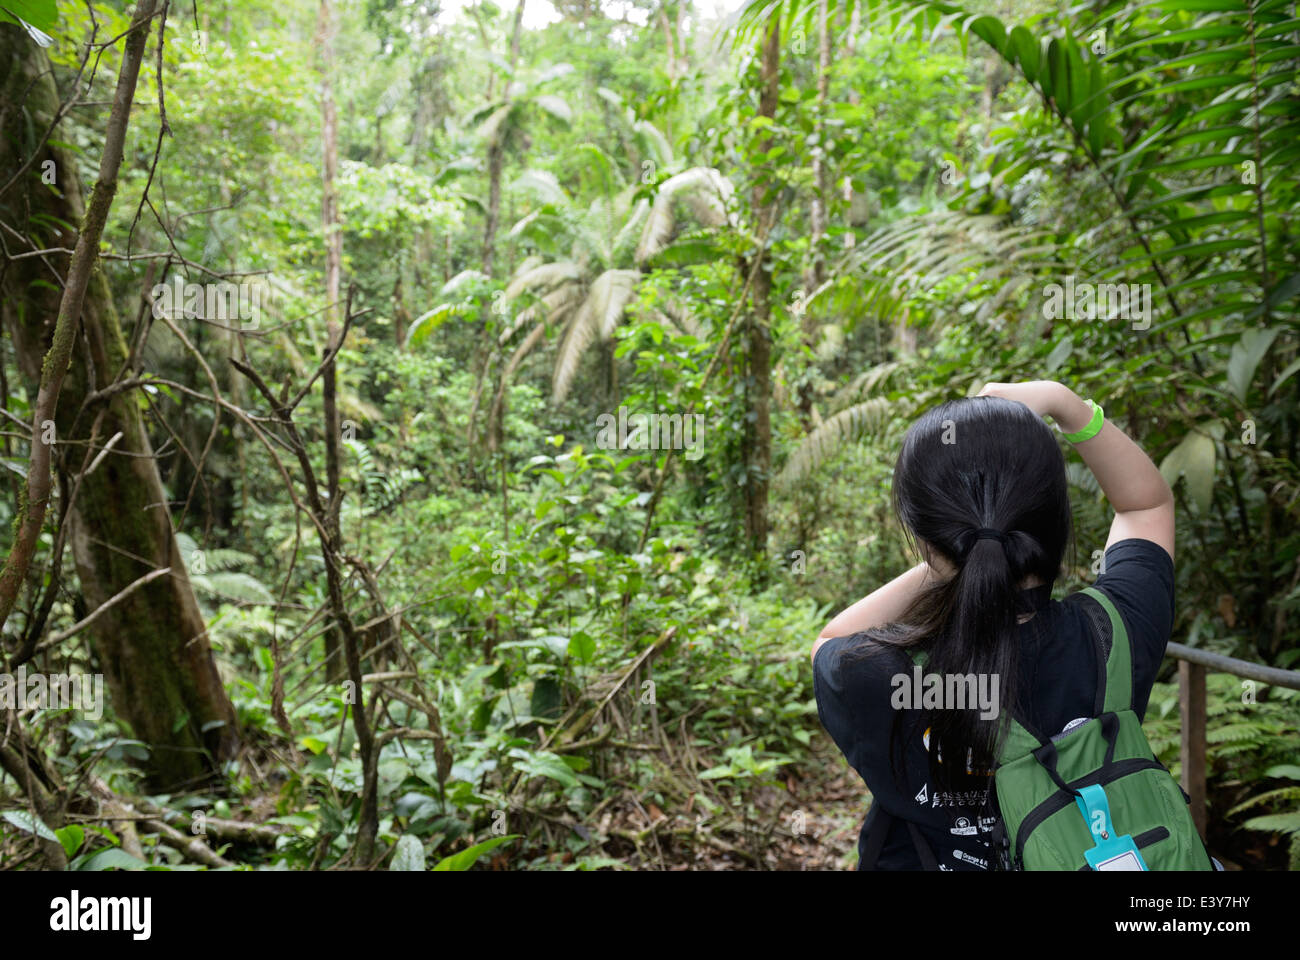 Girl, teen, Asian, taking a photo of an old-growth rainforest, Chilamate, Costa Rica - Stock Image